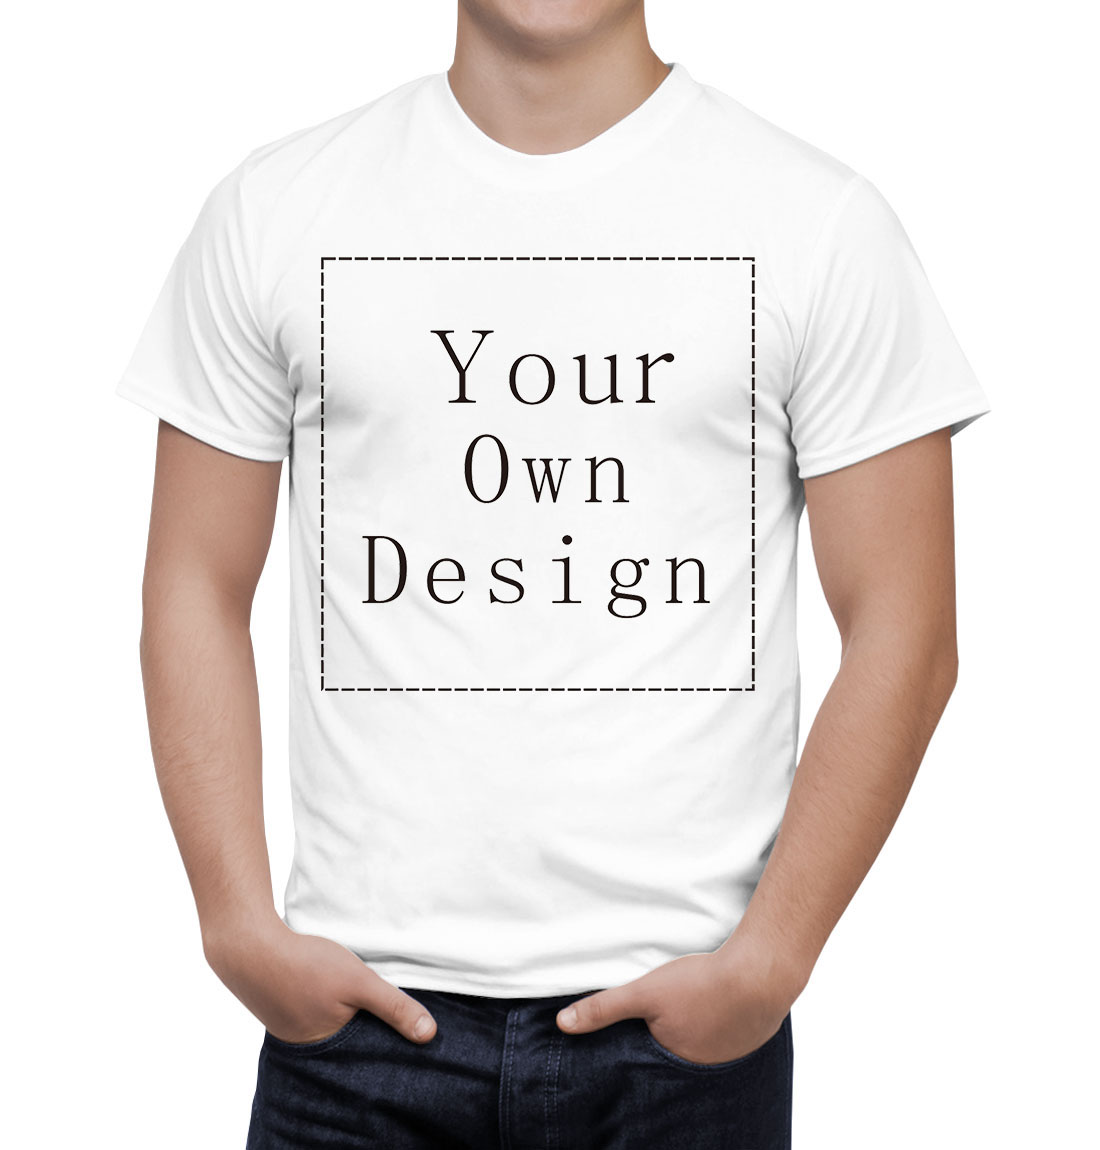 Design your own t shirt las vegas - Customized Men S T Shirt Print Your Own Design High Quality Fast Ship China Mainland